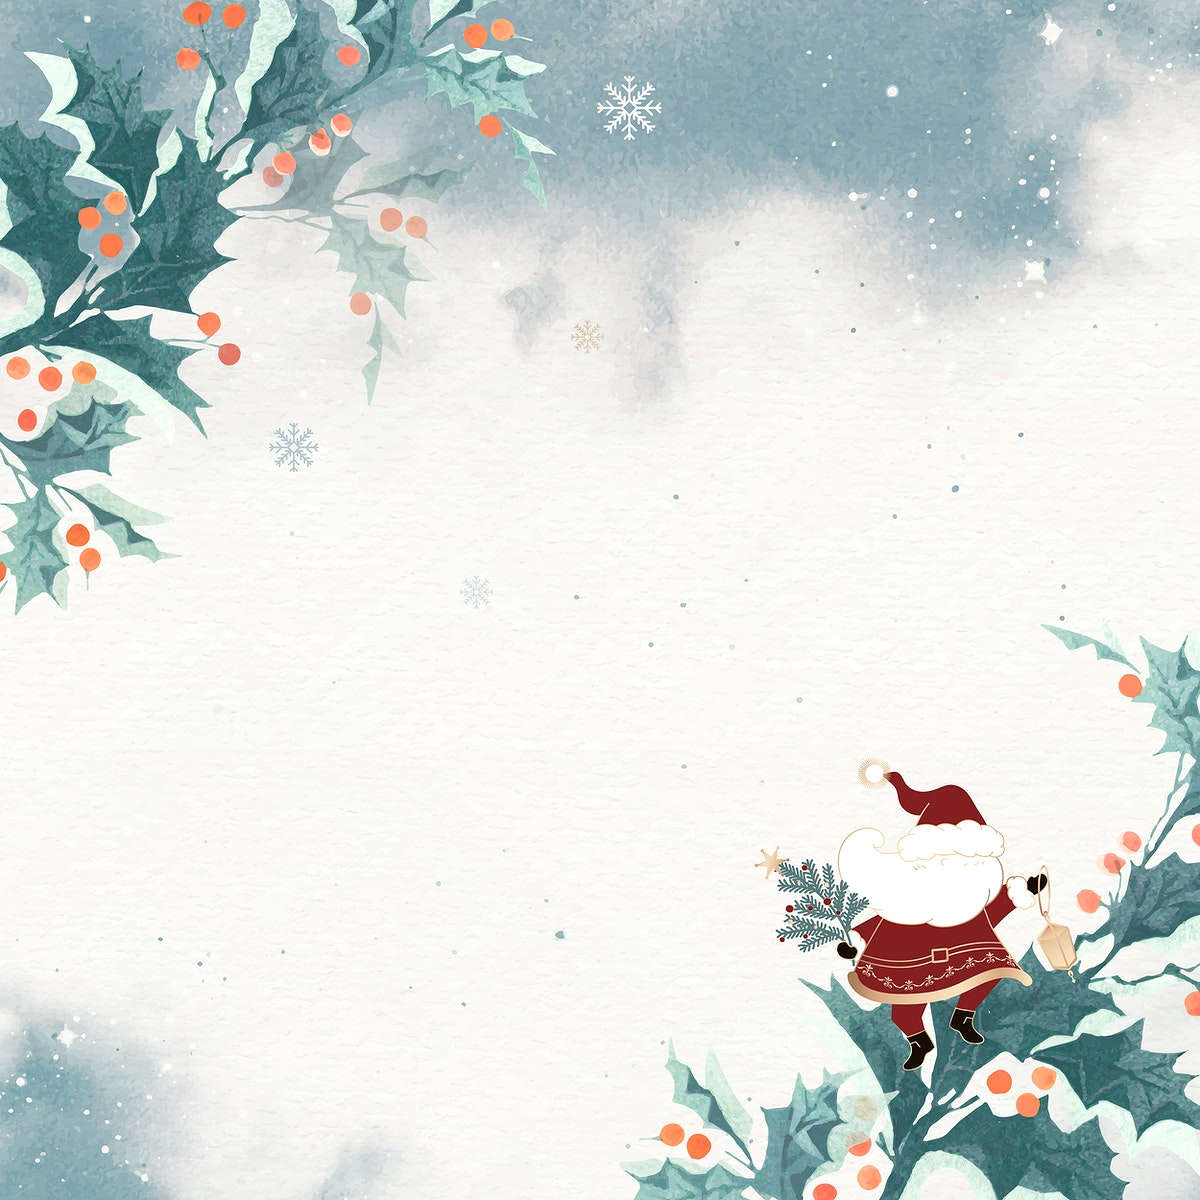 Santa Claus with holly berries doodle background vector